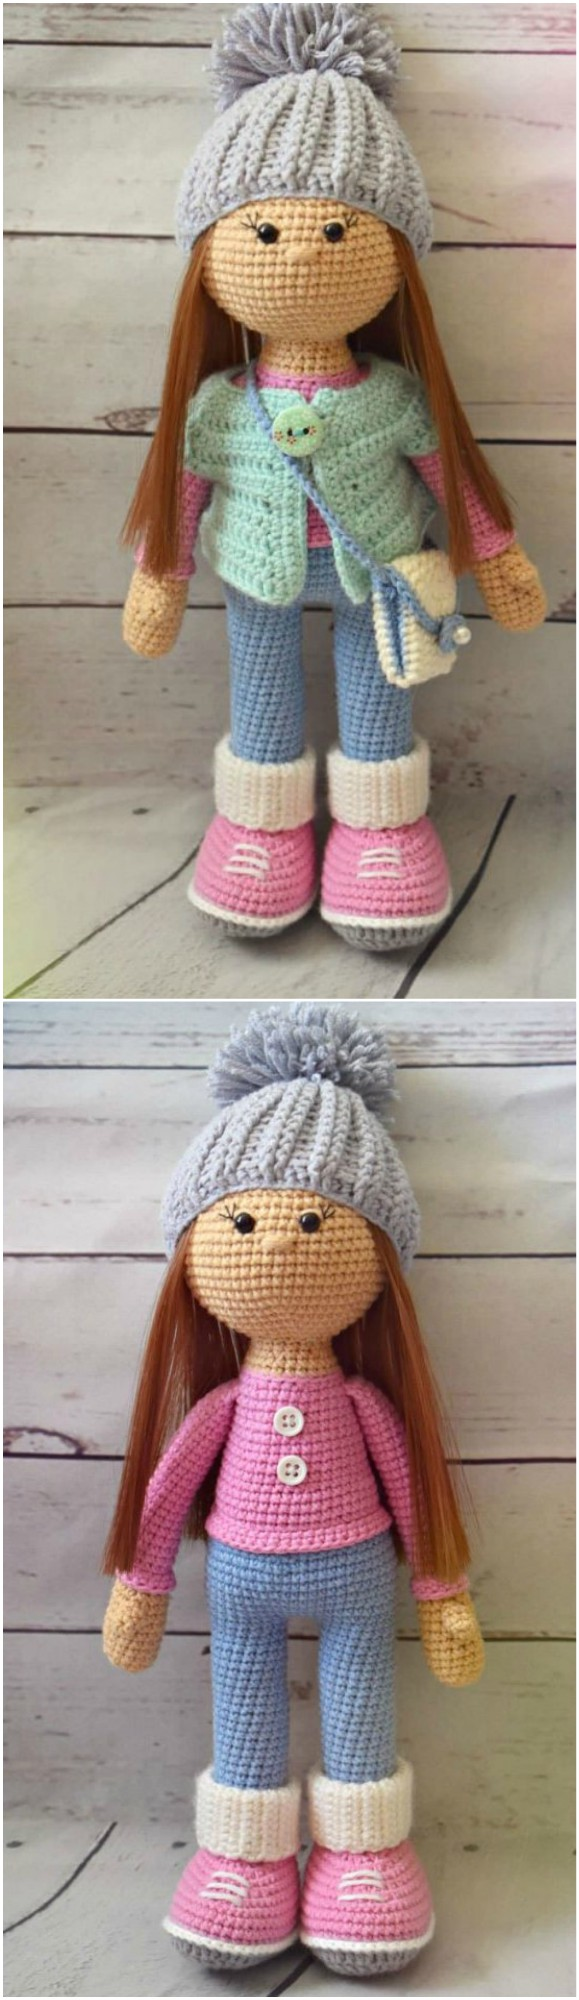 Amigurumi Doll Free Crochet Patterns - YouTube | 2000x579